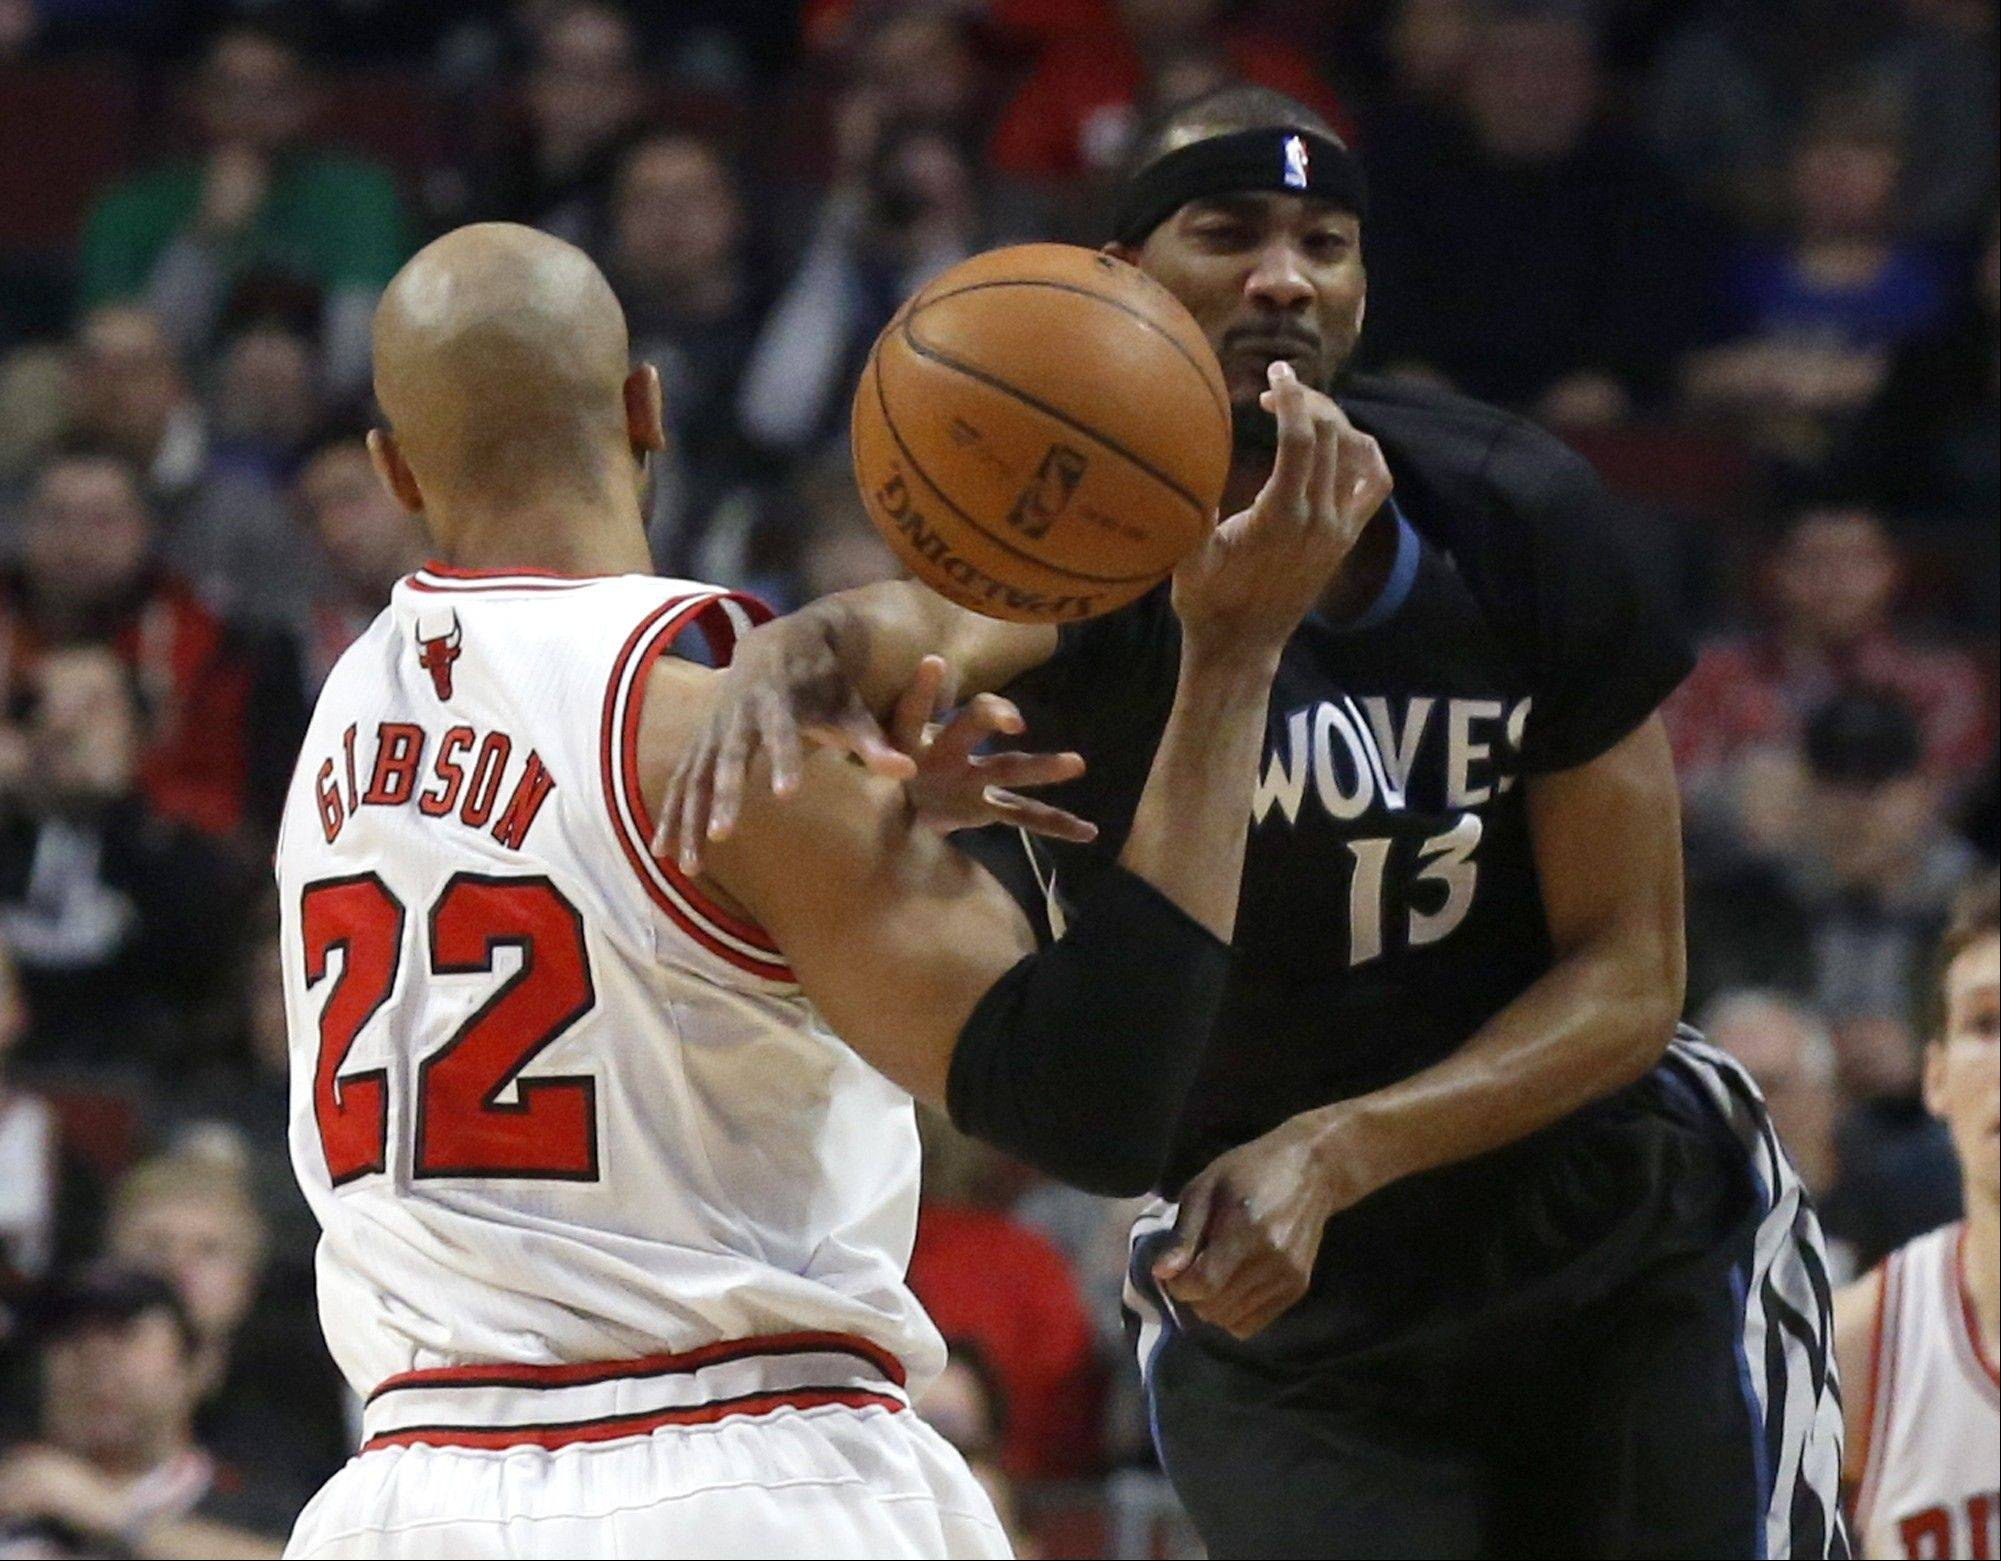 Minnesota Timberwolves forward Corey Brewer (13) knocks the ball away from Chicago Bulls forward Taj Gibson (22) during the first half of an NBA basketball game, Monday, Jan. 27, 2014, in Chicago.